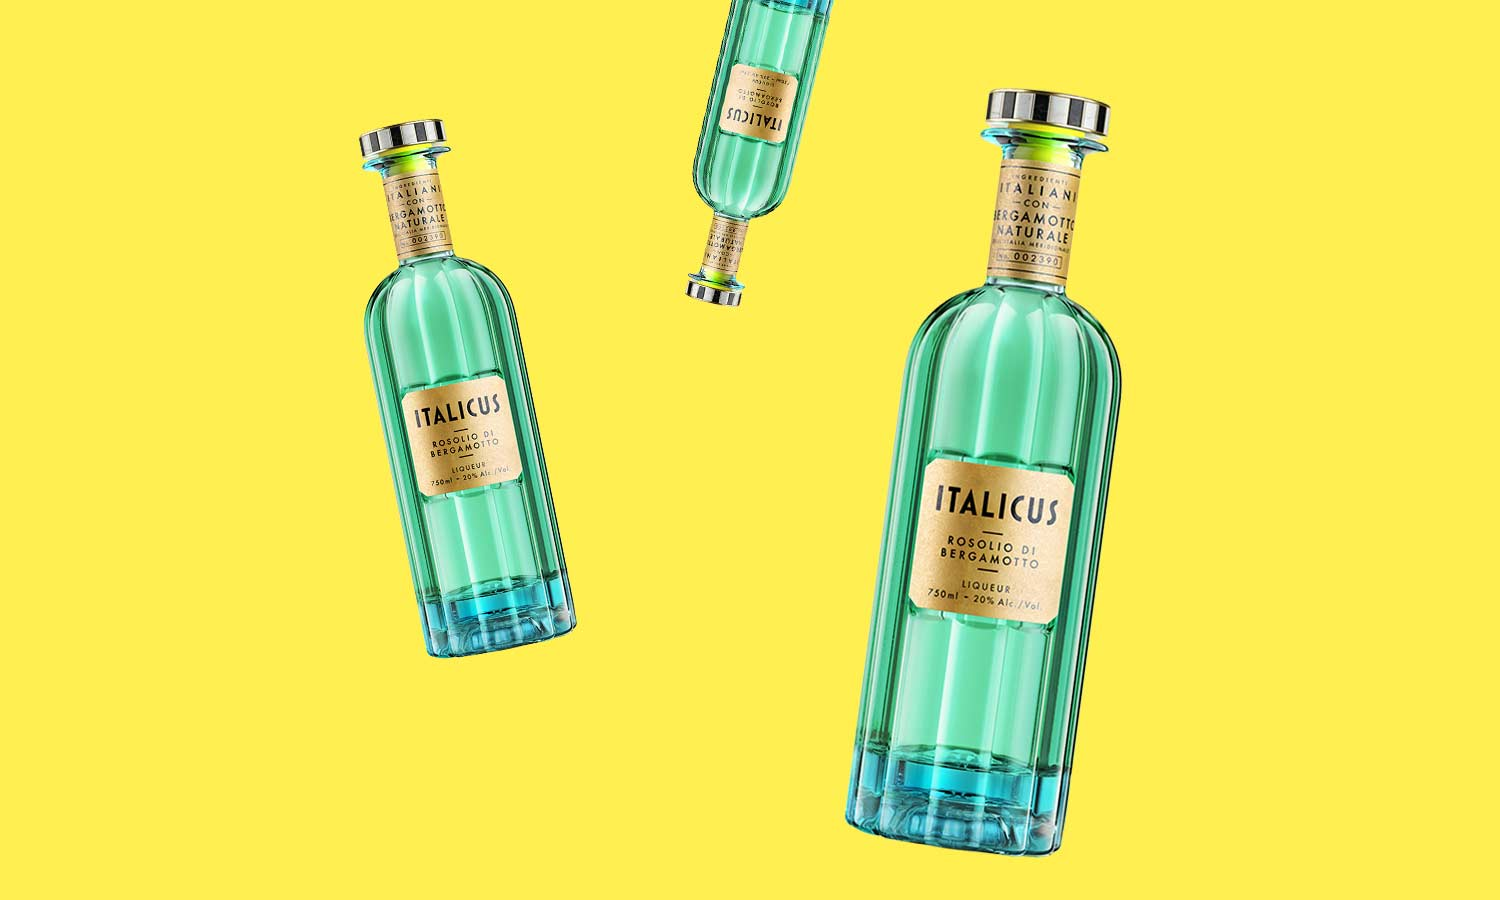 Italicus is here.